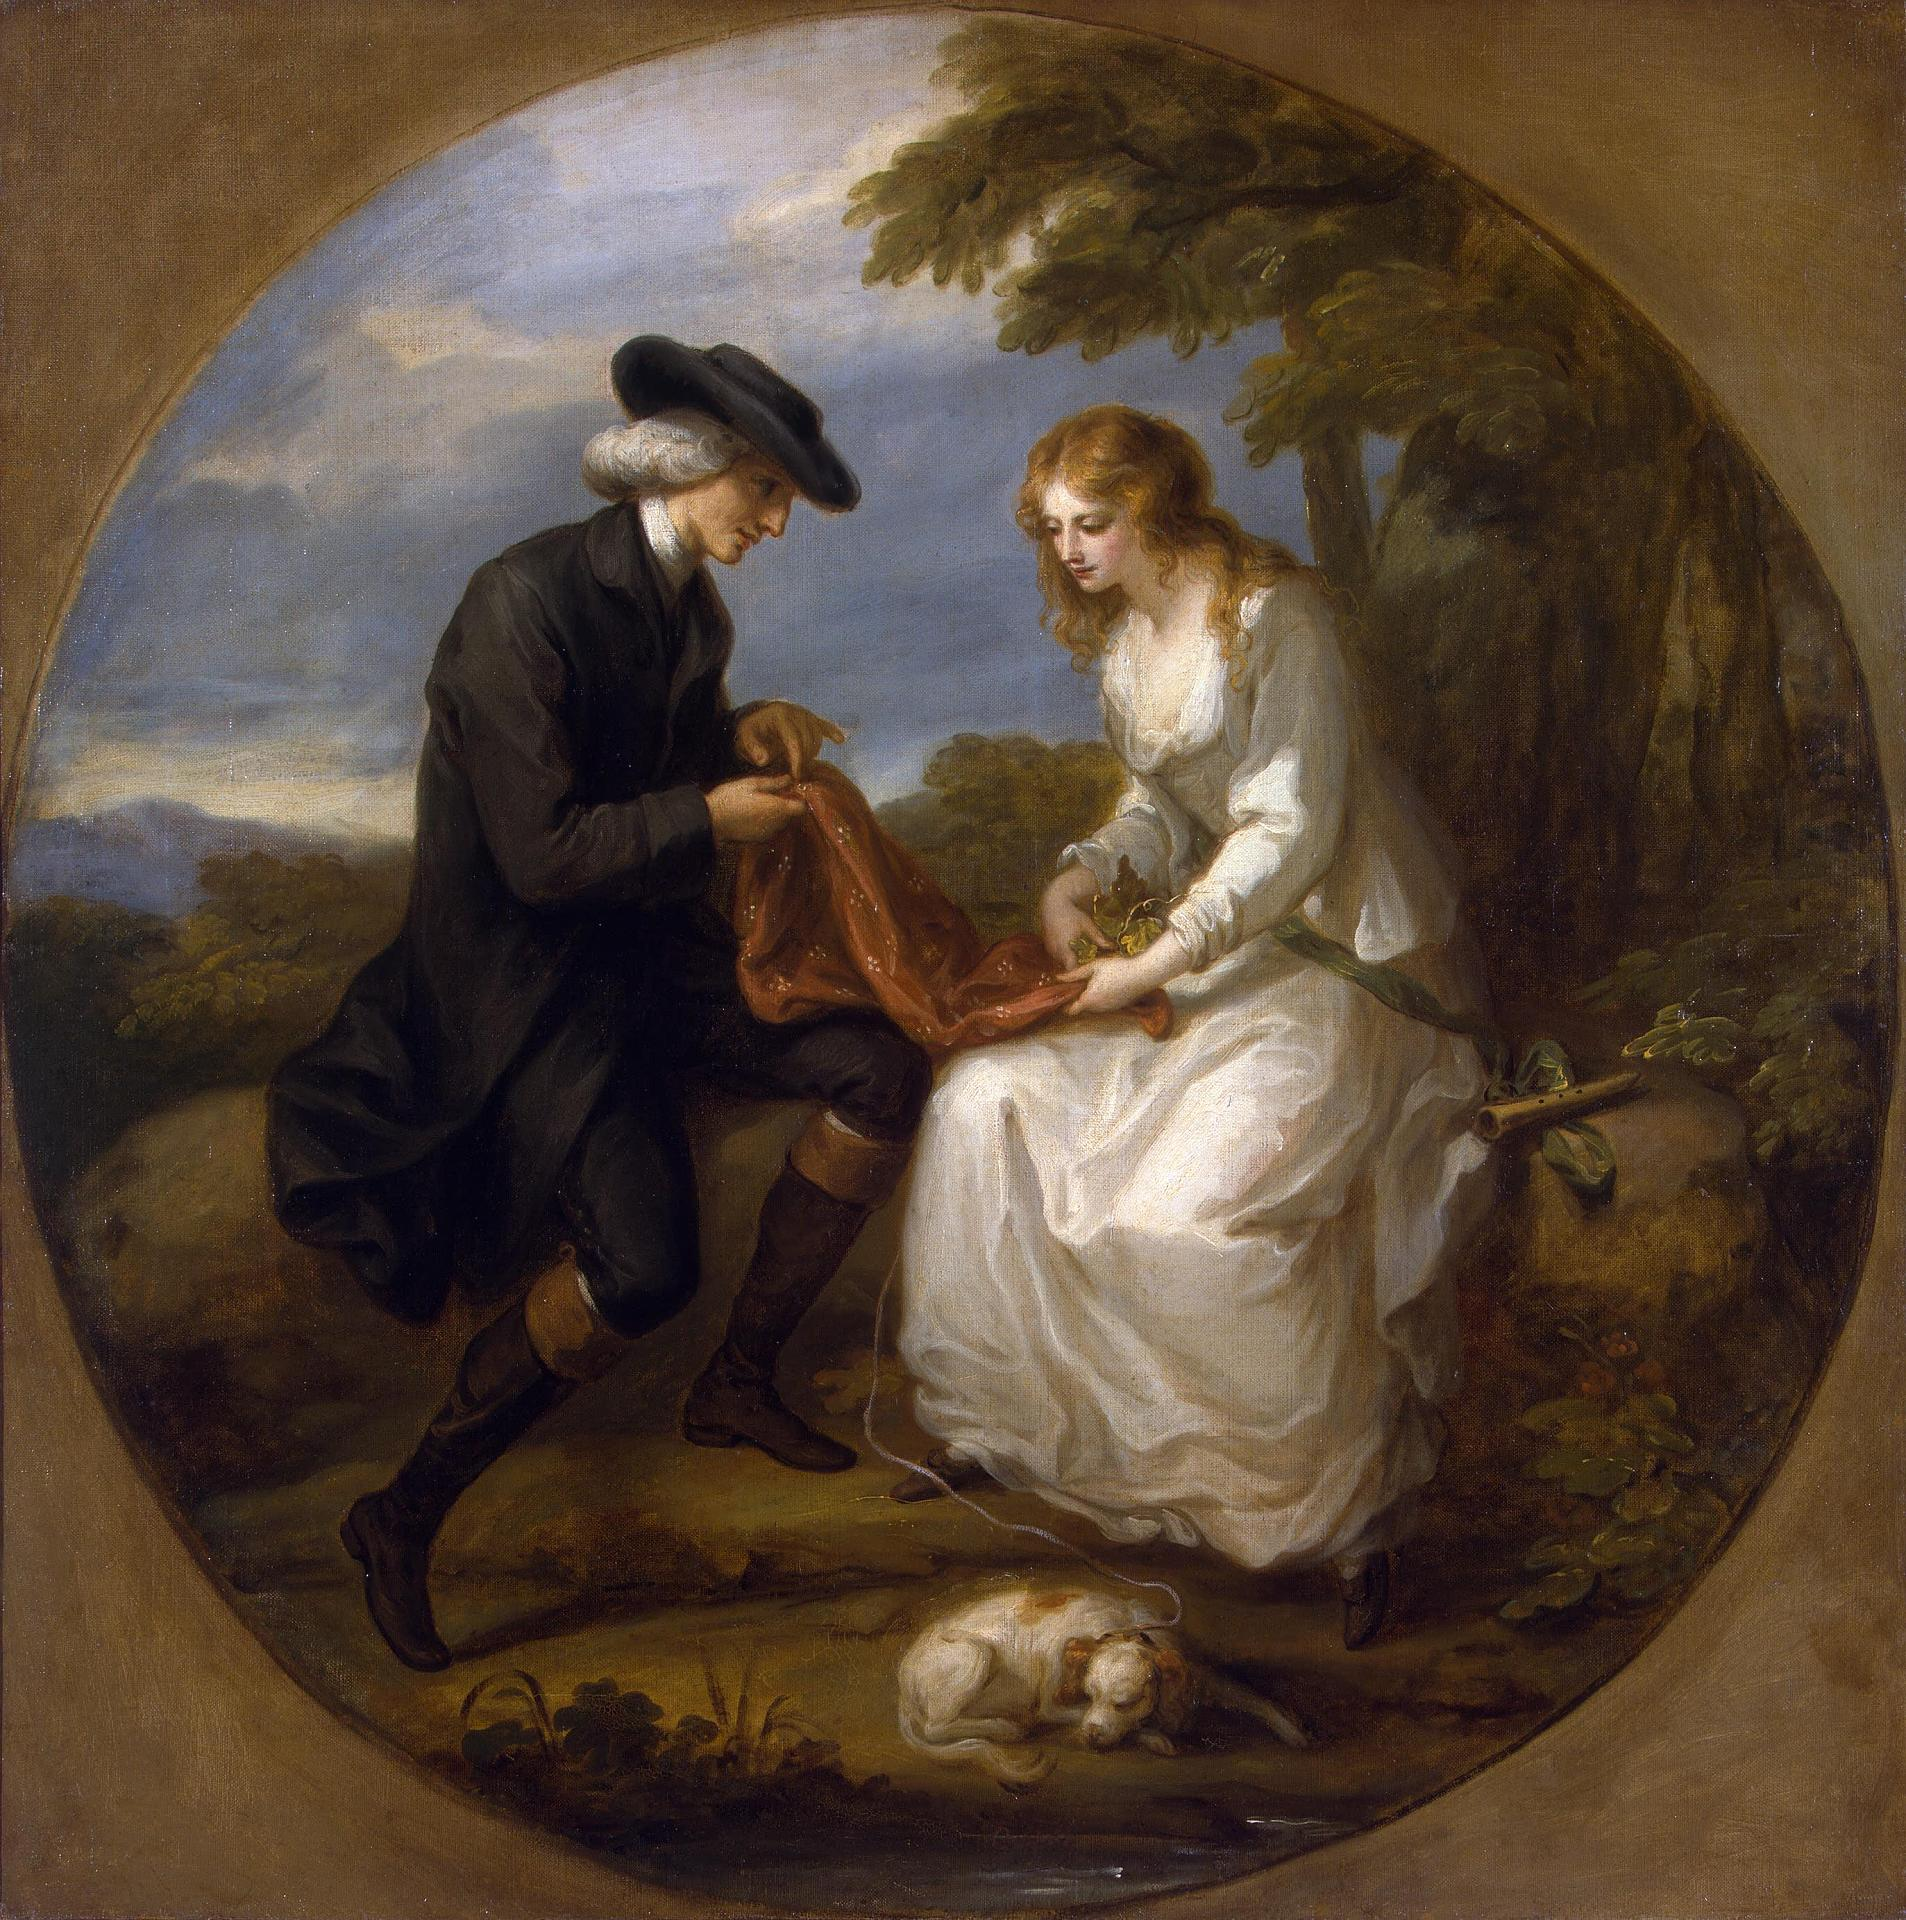 Angelica Kauffmann S Paintings Such As Cornelia